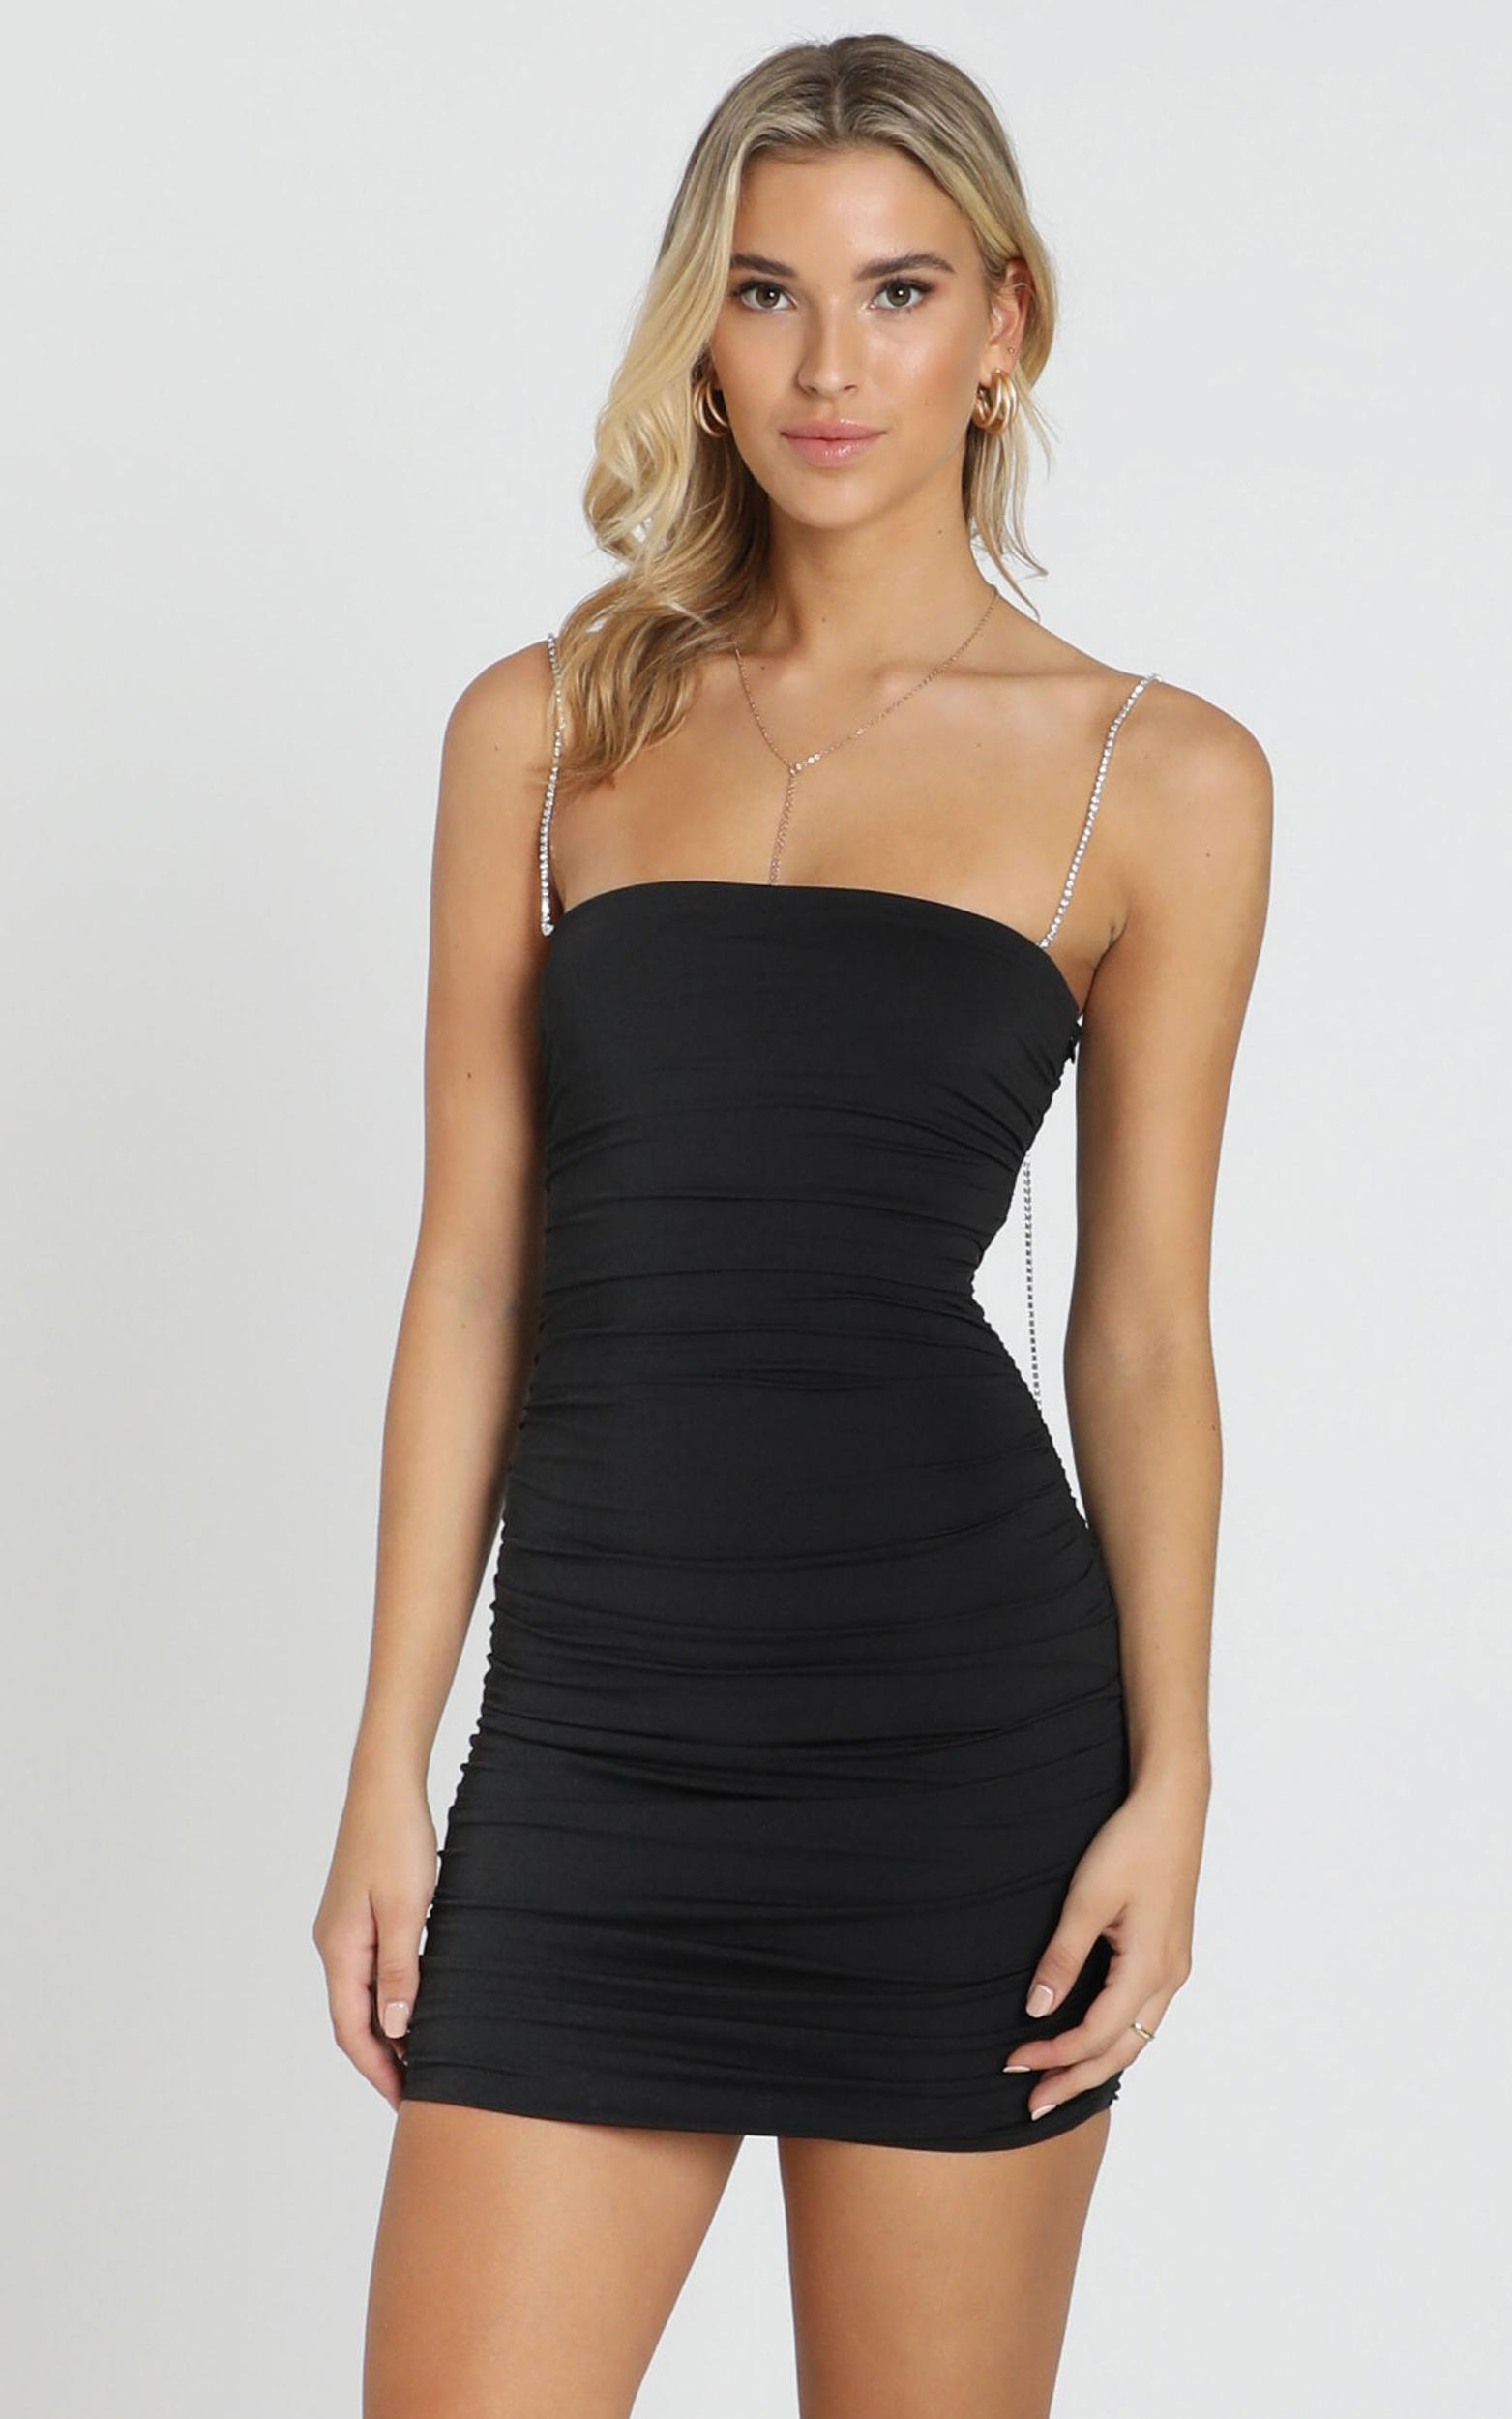 Im A Diamond Dress In Black Diamante - 14 (XL), Black, hi-res image number null